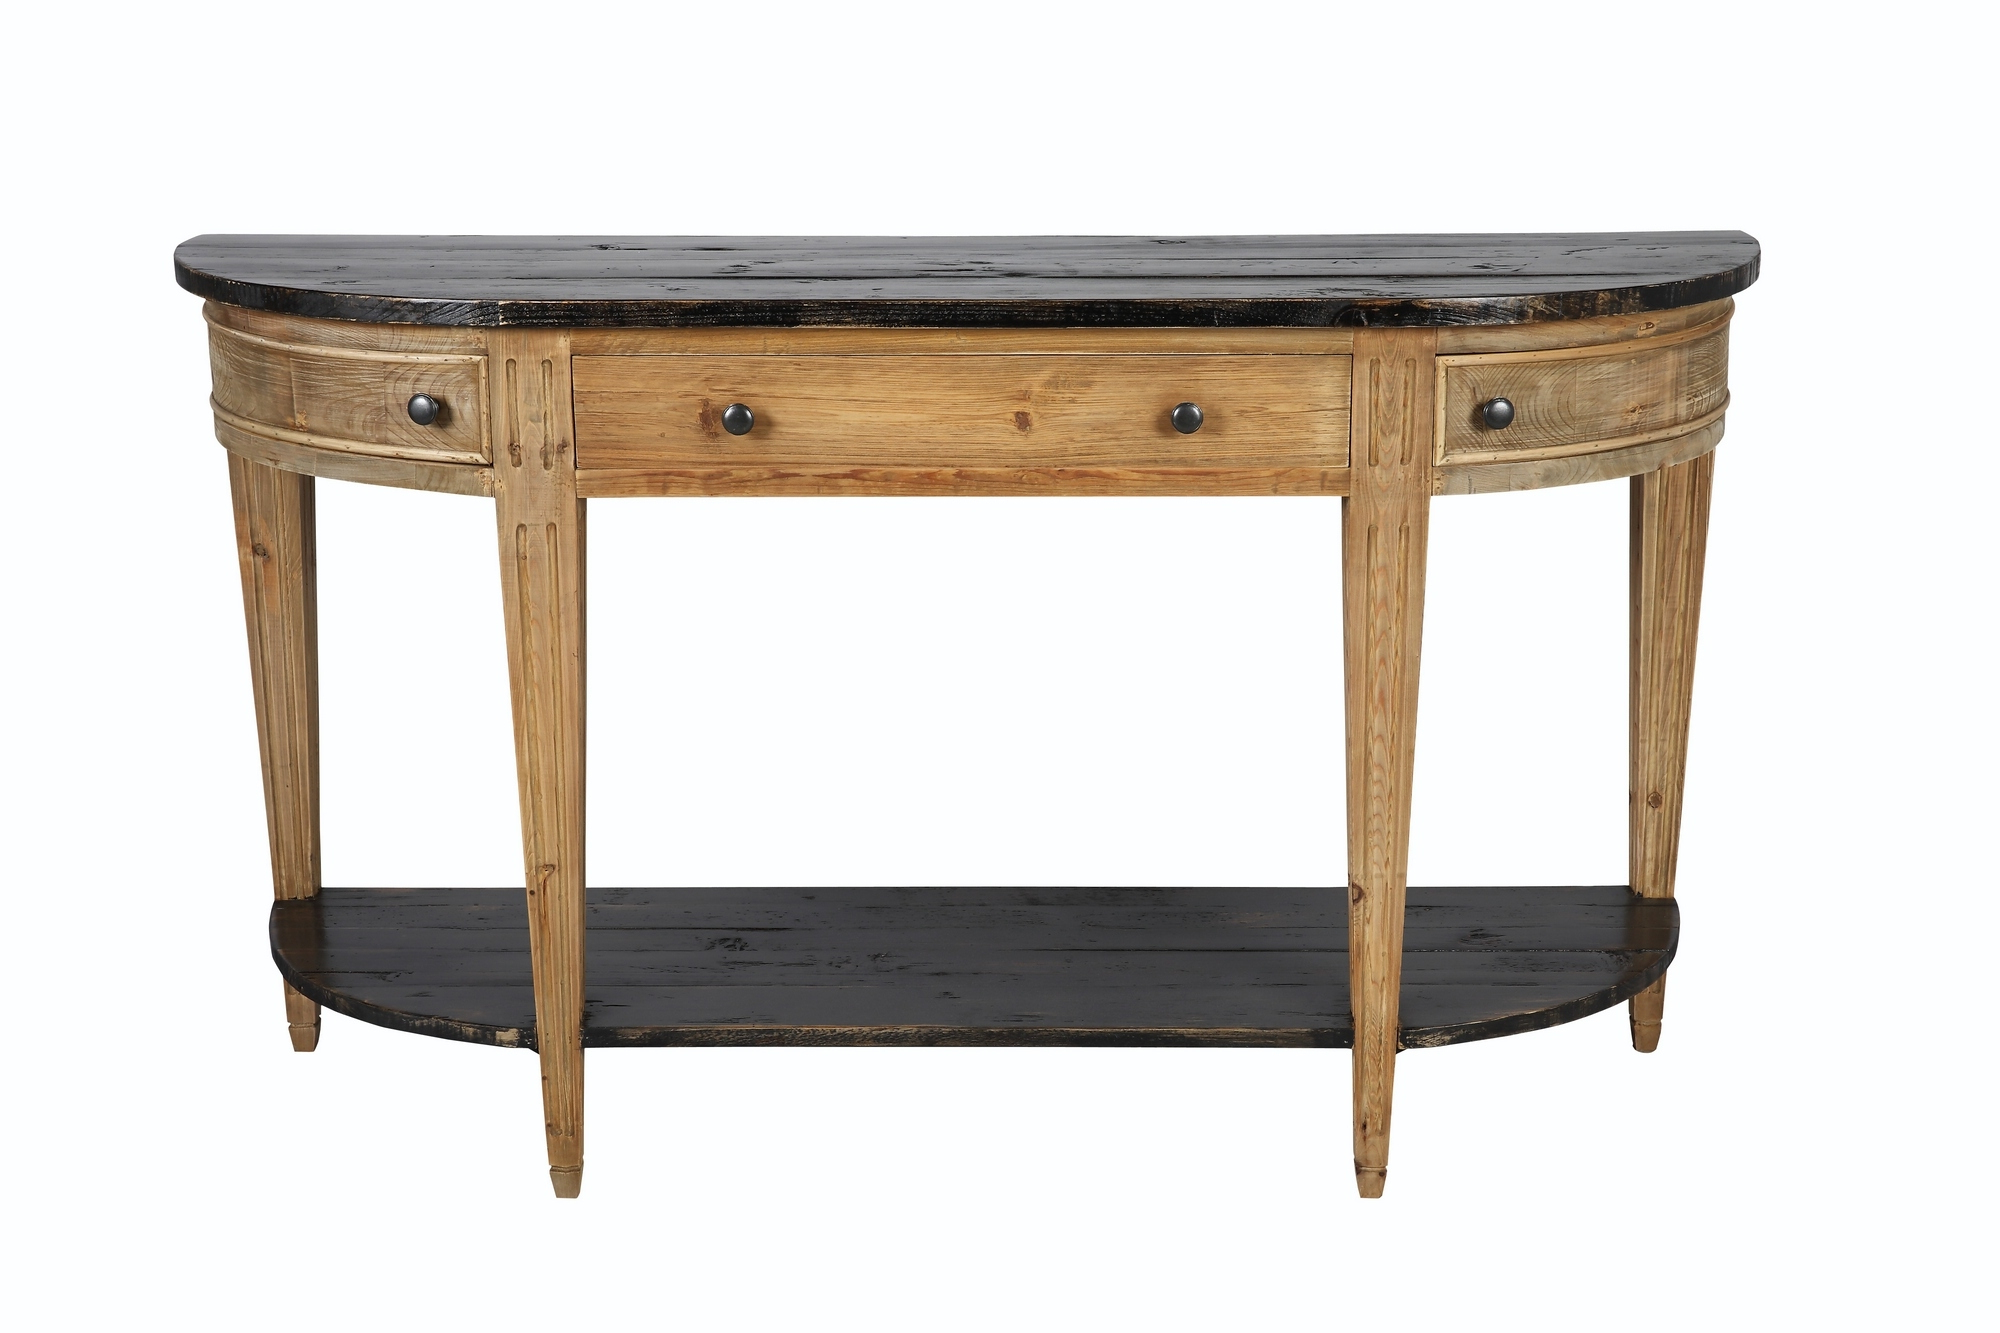 Juliet Console Table (Kj 1002 24)Moes Home Regarding Balboa Carved Console Tables (Gallery 12 of 20)